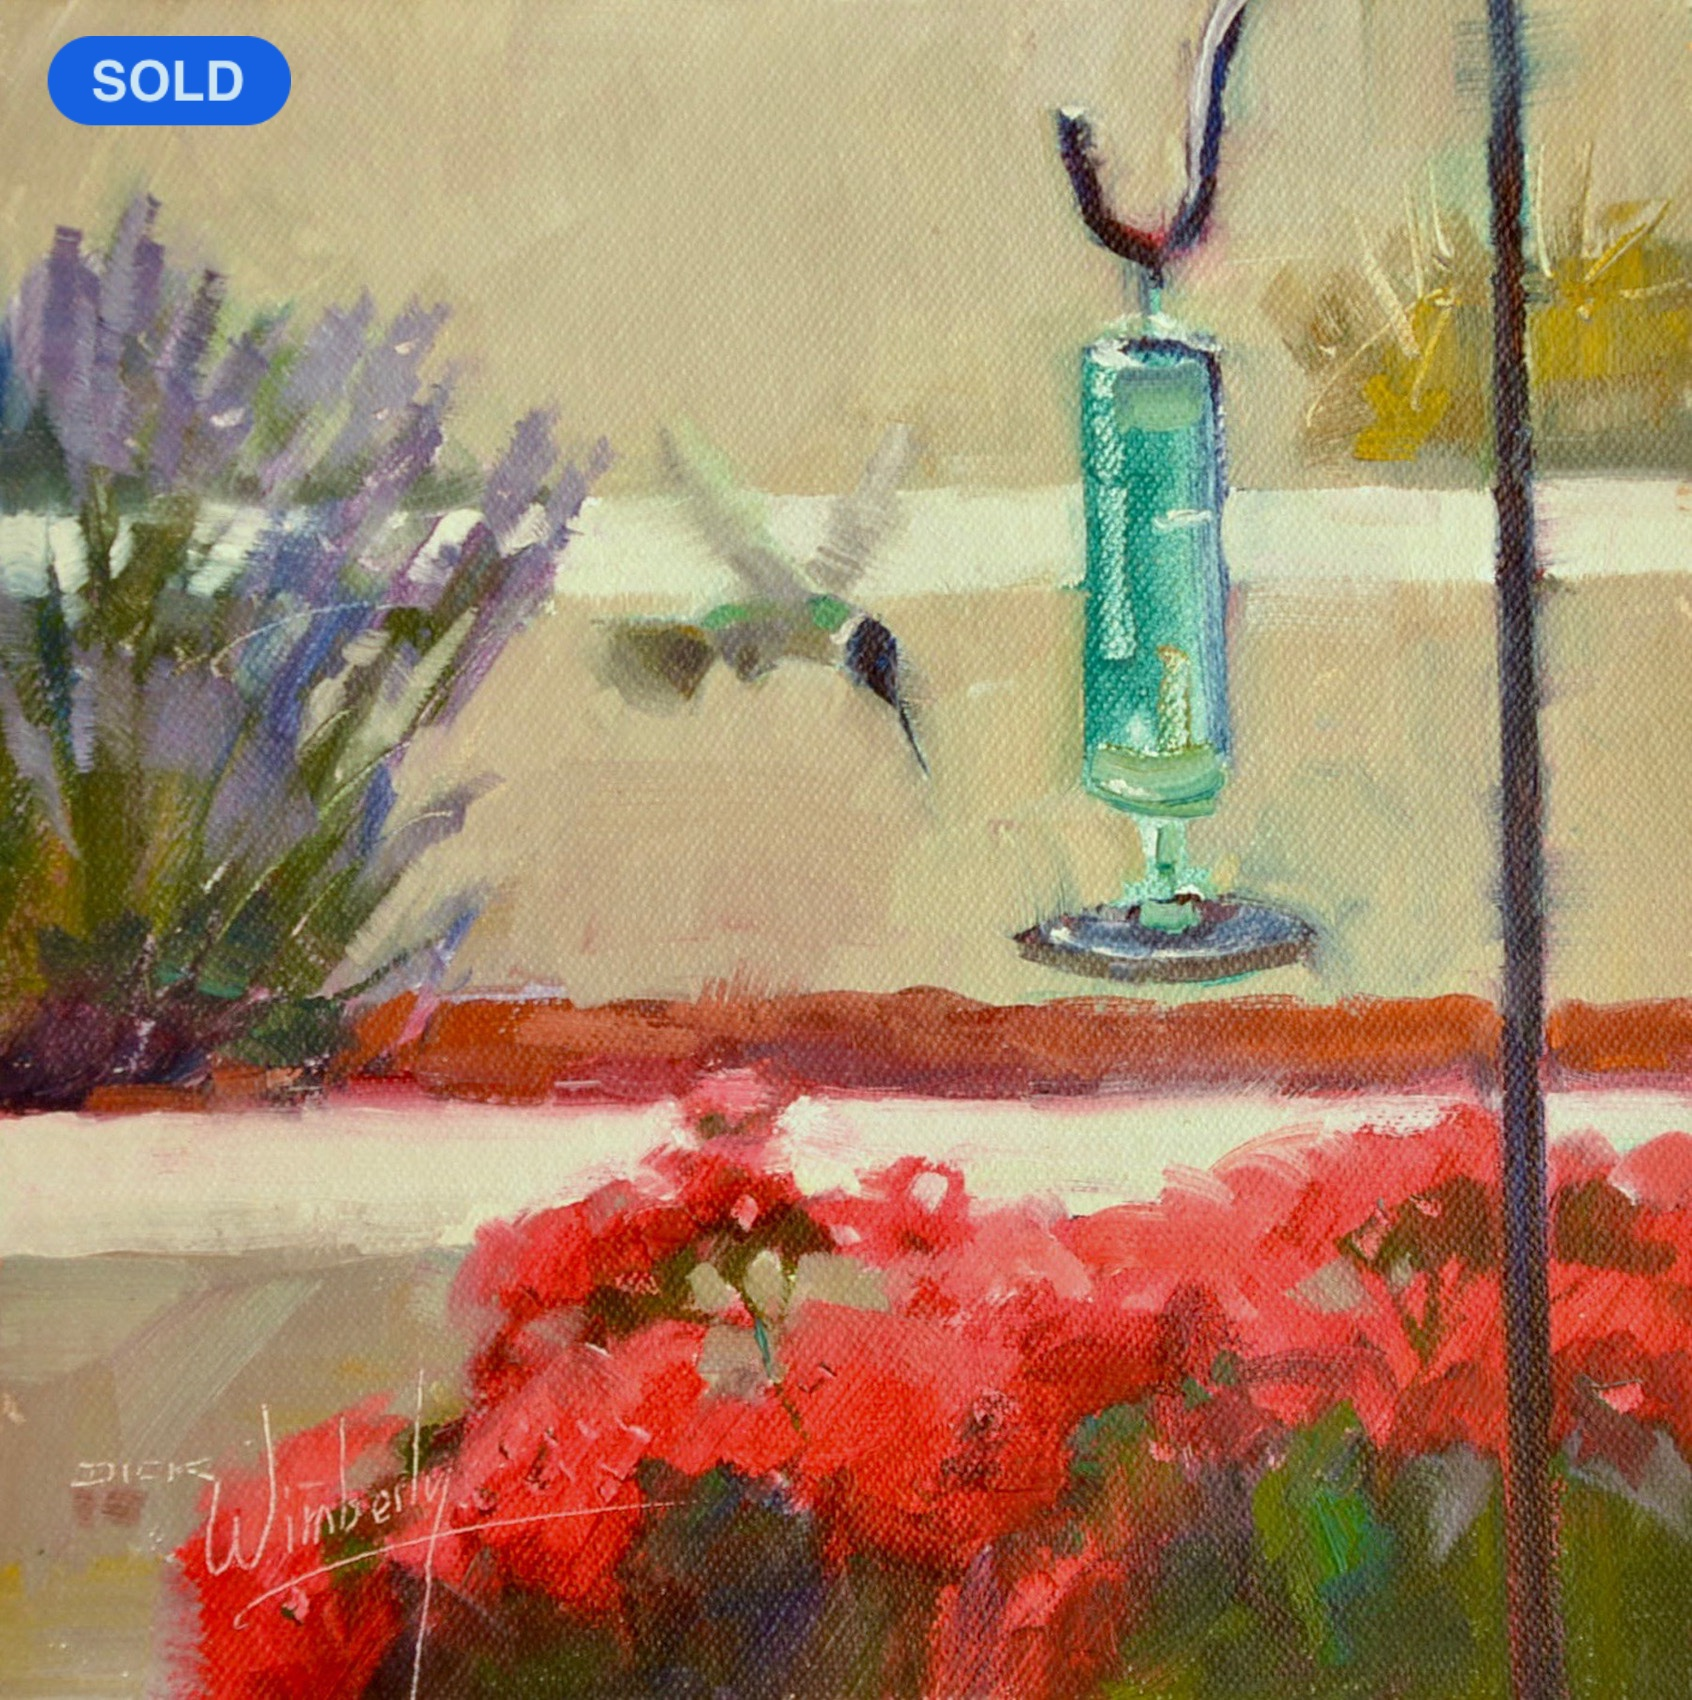 SOLD - Dick Wimberly: Coming In